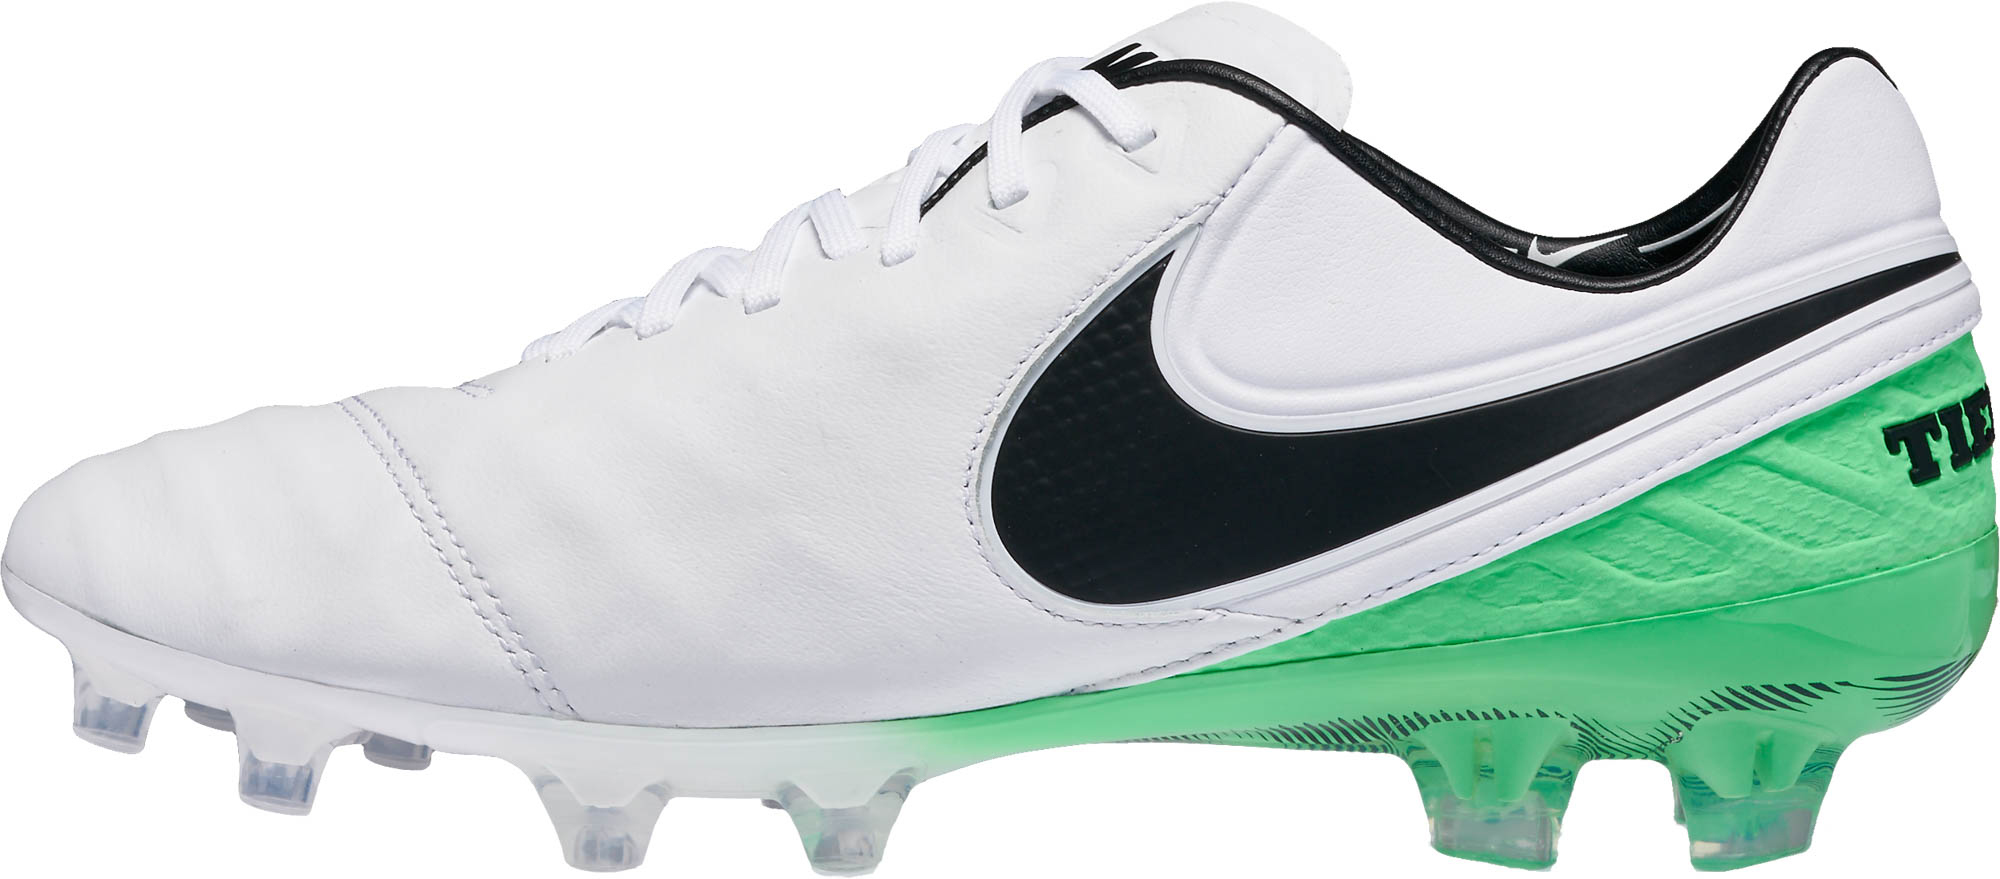 buy online 82f41 bee78 Nike Tiempo Legend VI FG – White Electro Green